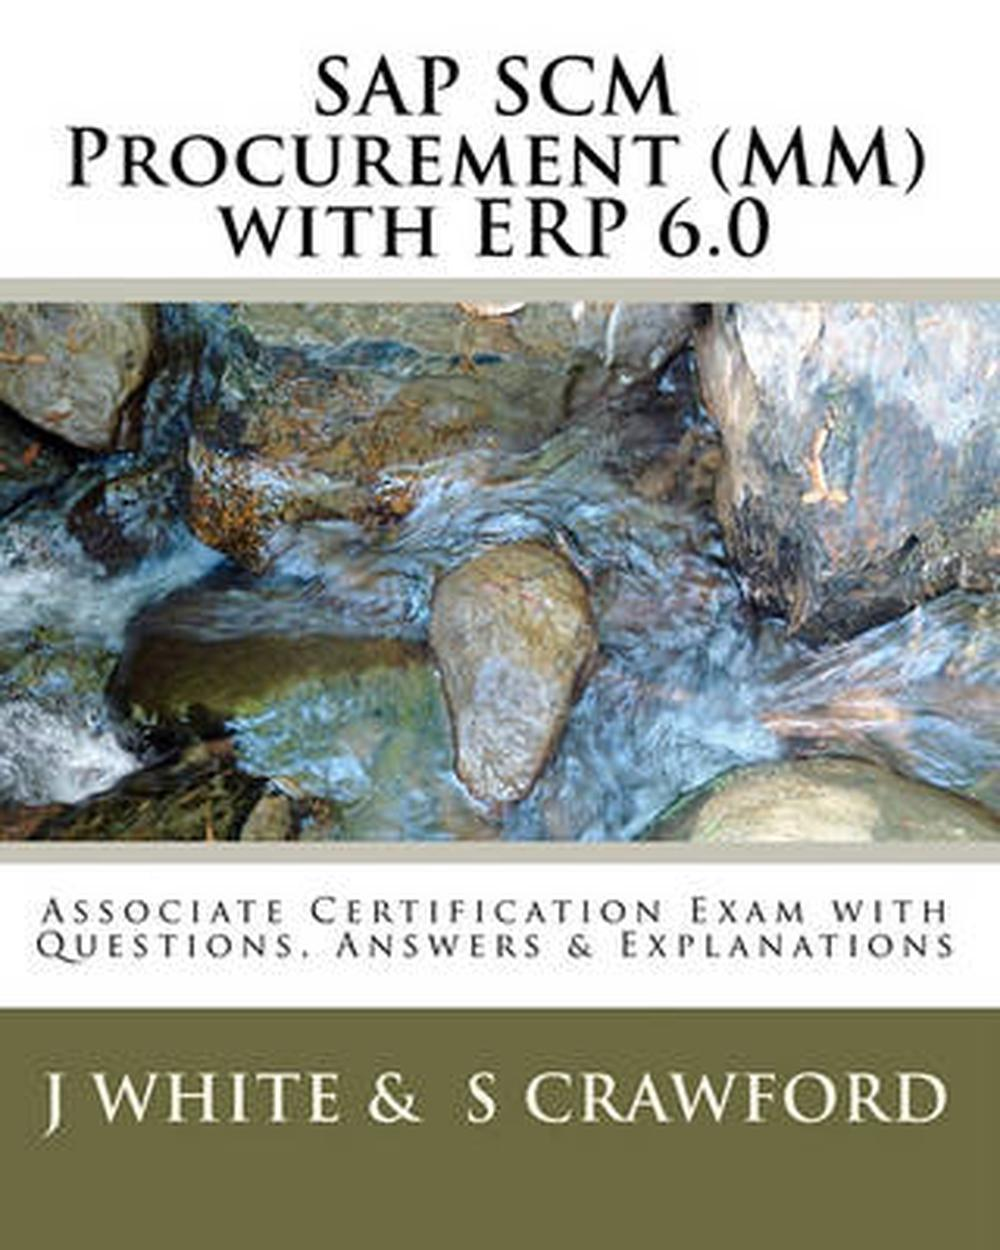 sap scm procurement mm with erp 6 0 associate certification exam with questions answers explanations [ 1000 x 1253 Pixel ]